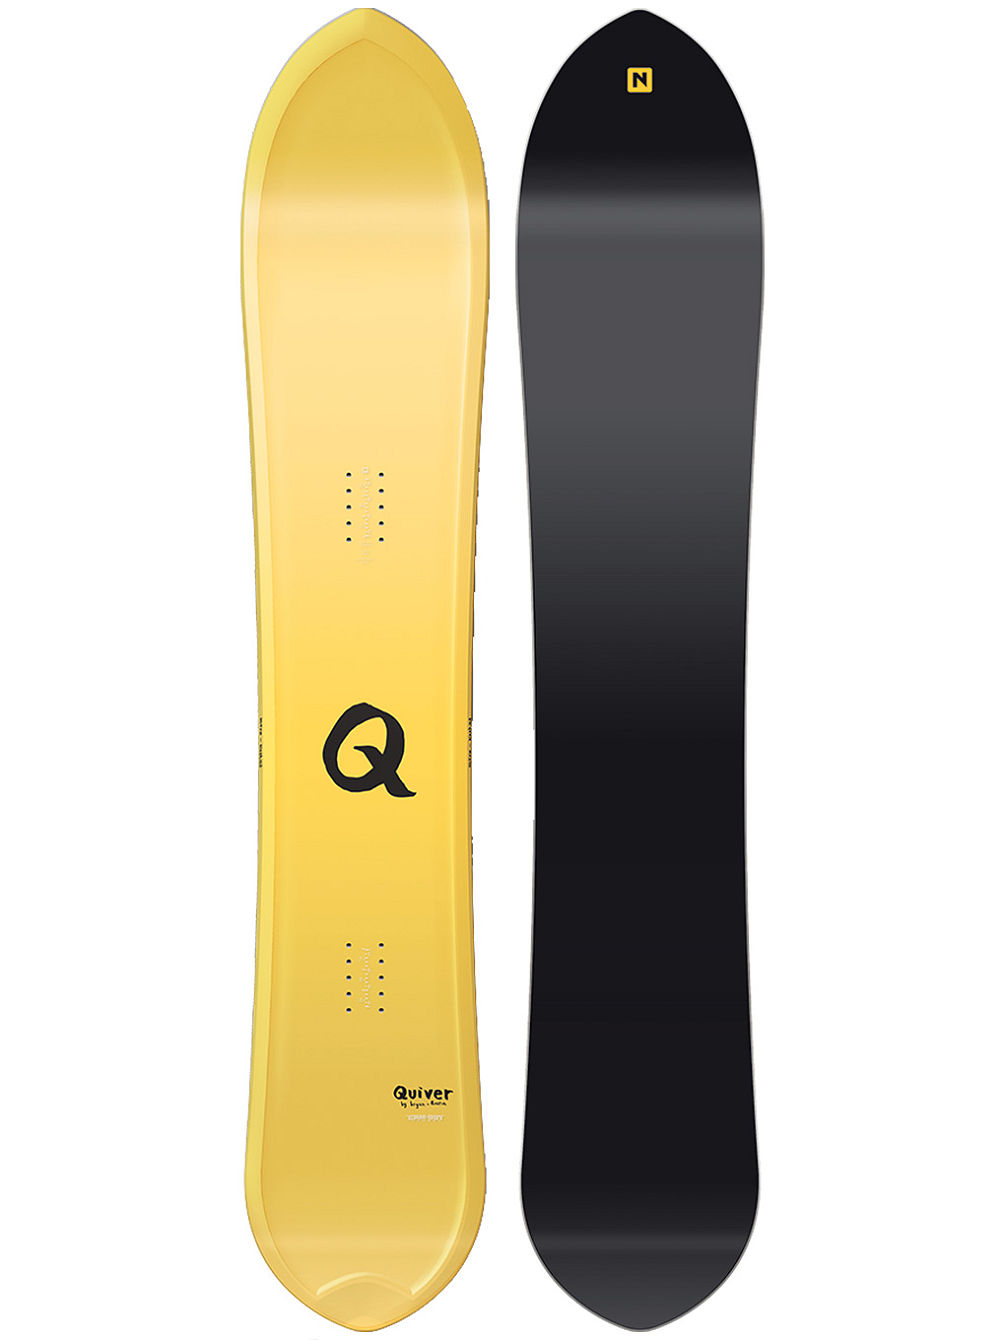 The Quiver Slash 163 2018